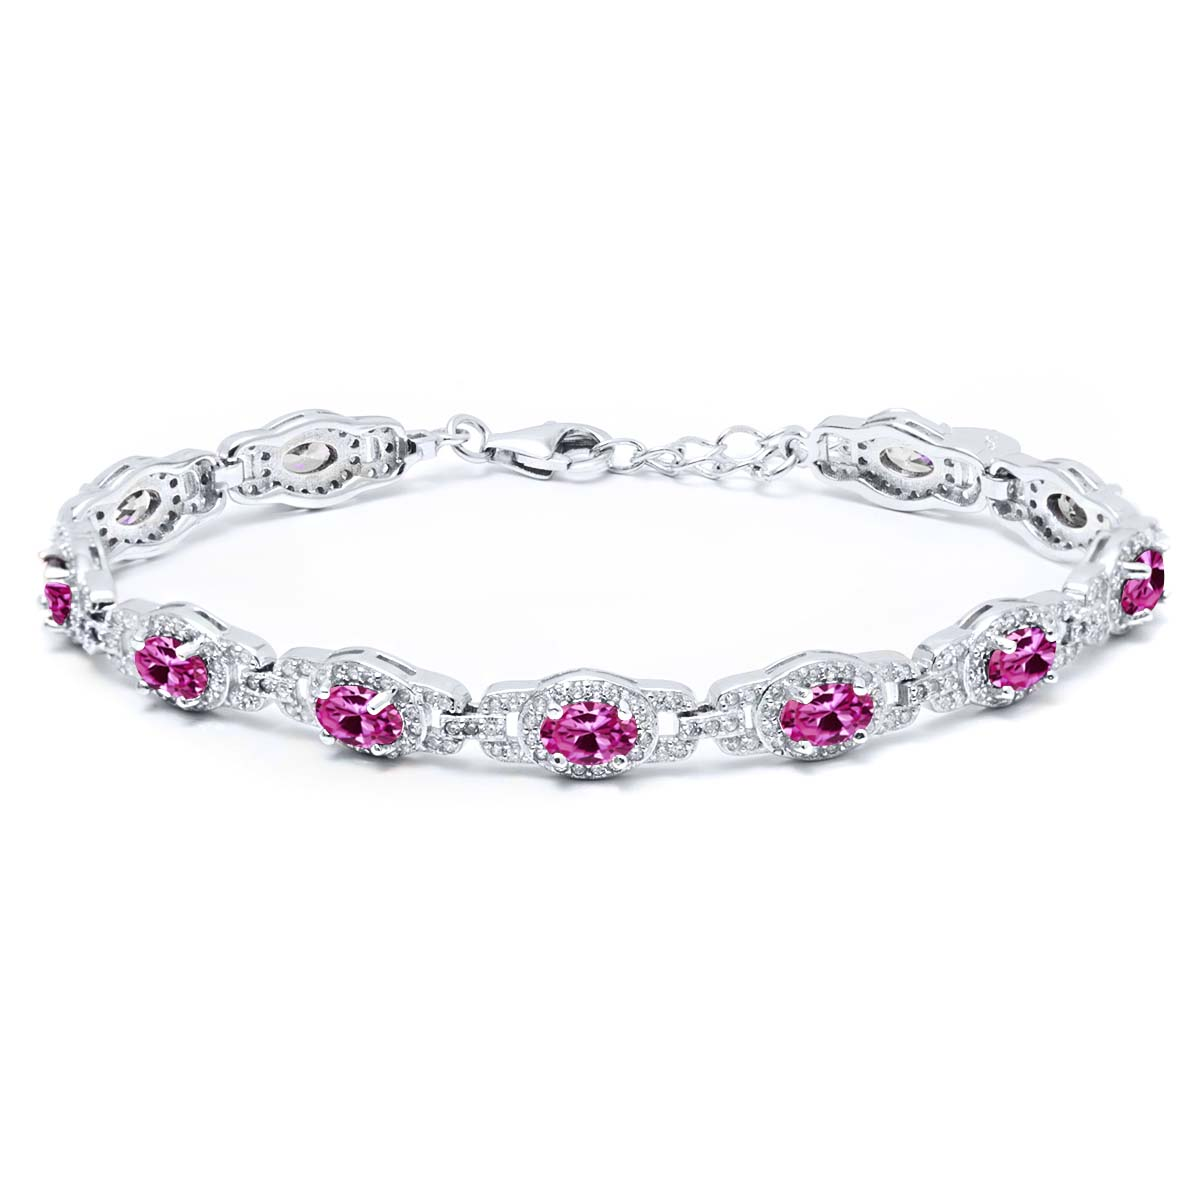 10.20 Ct Oval Pink Created Sapphire 925 Sterling Silver Bracelet by